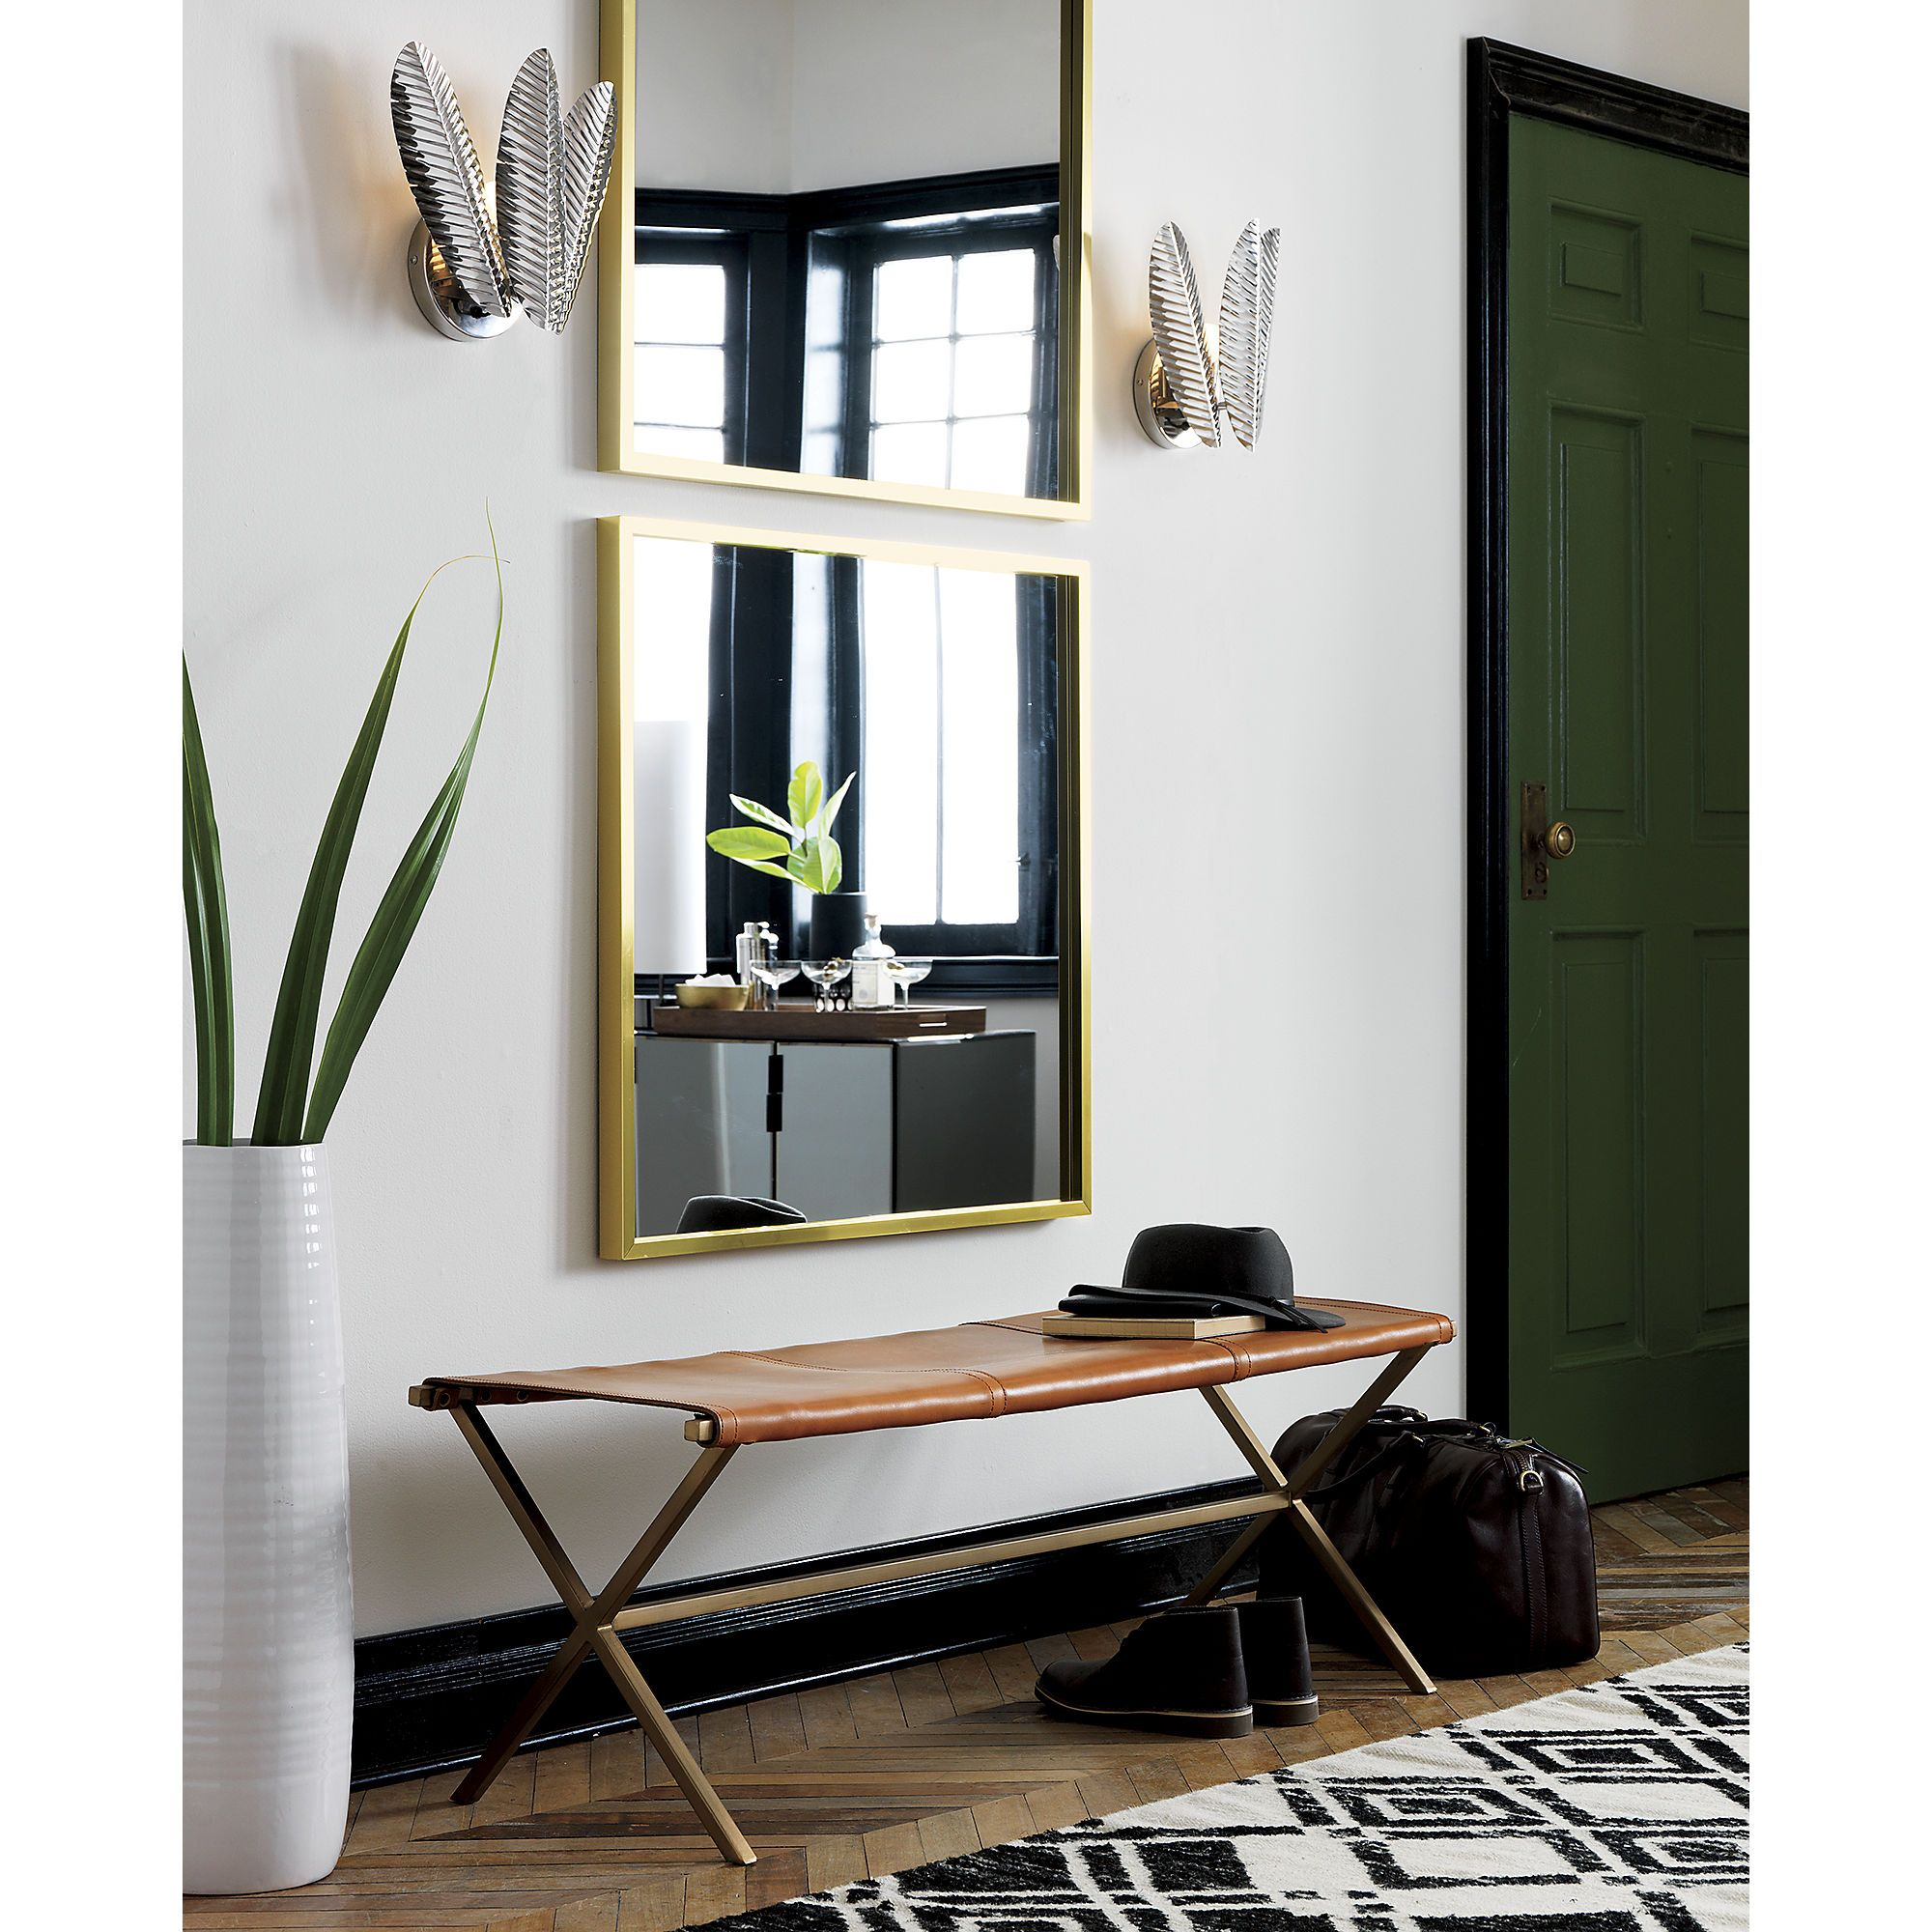 With Modern Mirrors In Barley There Frames, Decorative Mirrors And Standing